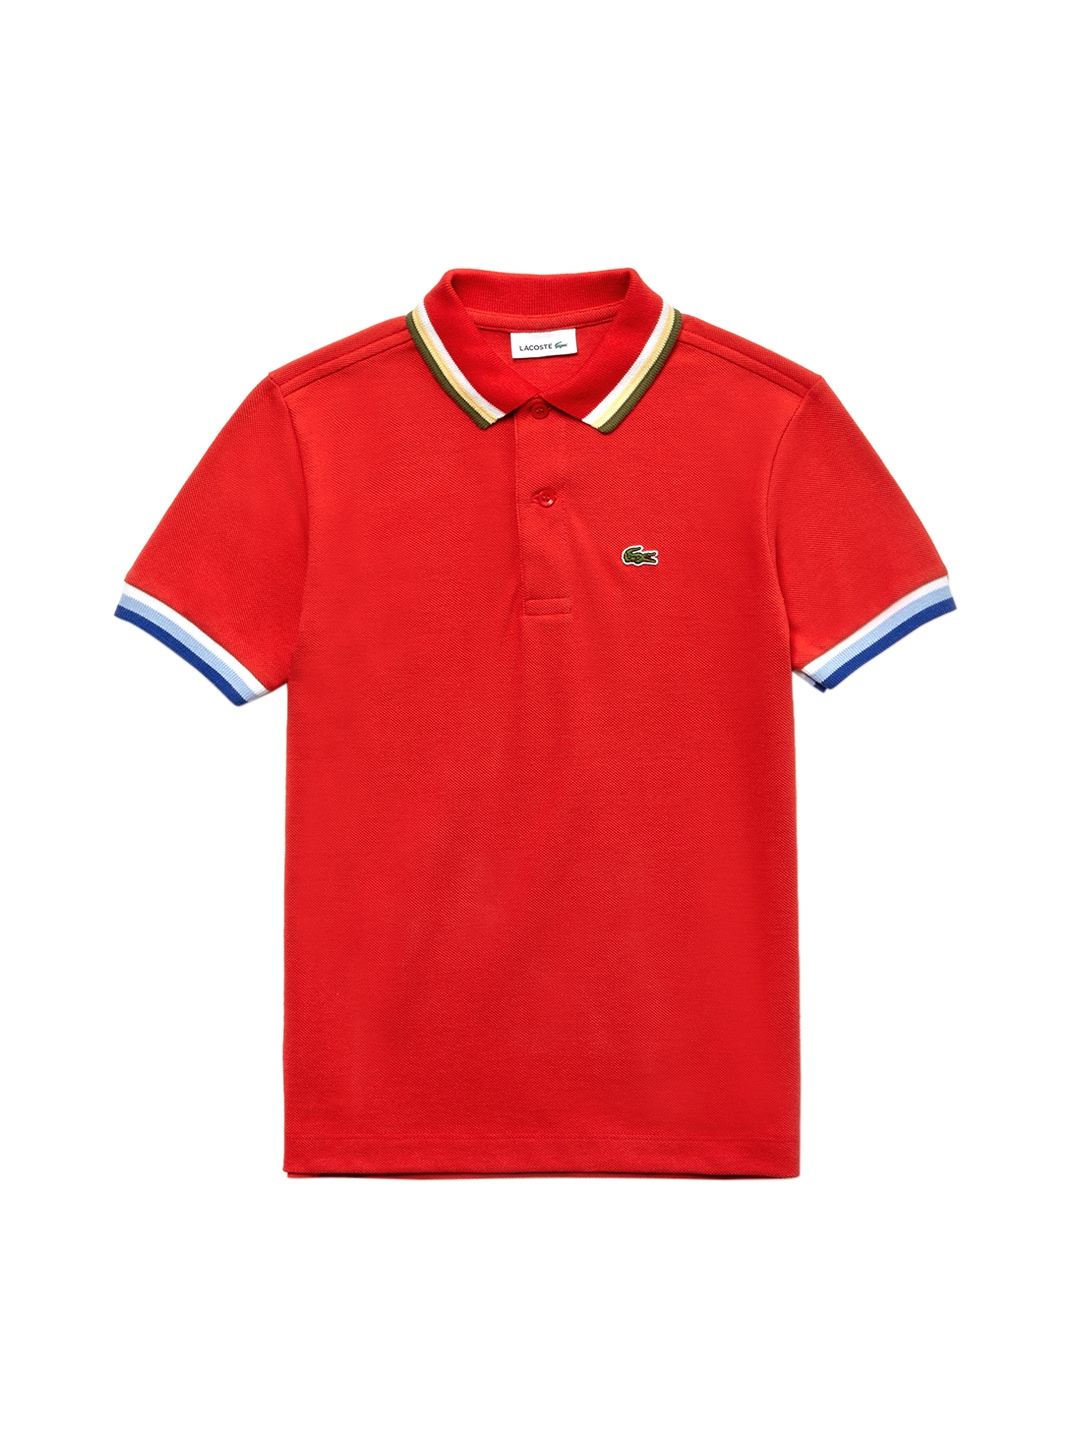 1388a5b8f Lacoste - Buy Clothing   Accessories from Lacoste Store